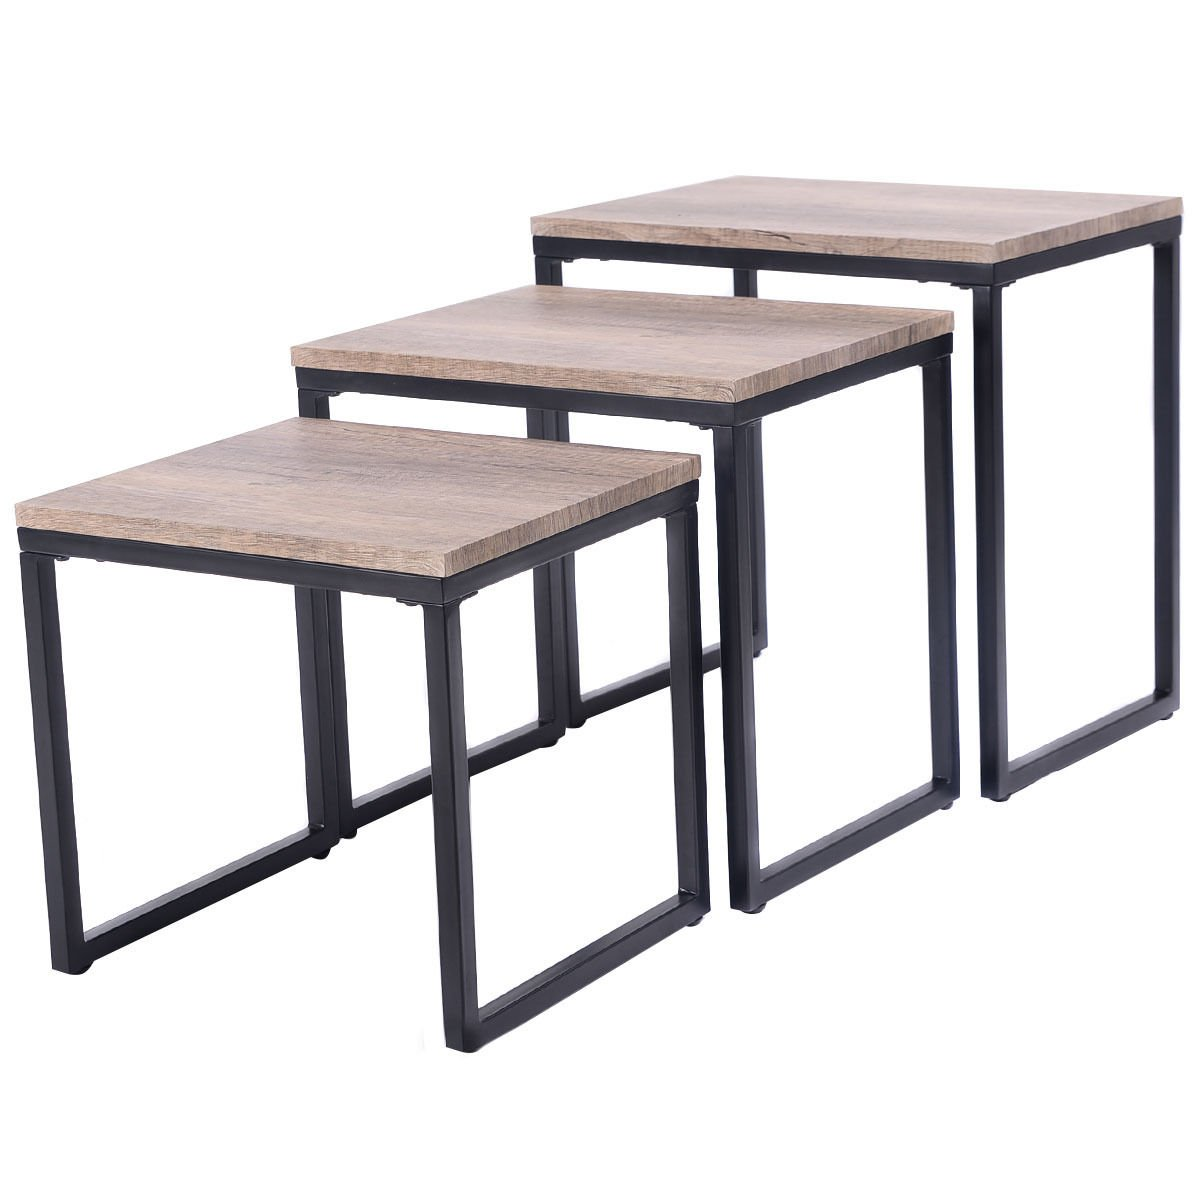 nesting end tables living room. Amazon com  Giantex 3PC Stacking Nesting Coffee End Table Set Living Room Modern Home Furniture Kitchen Dining